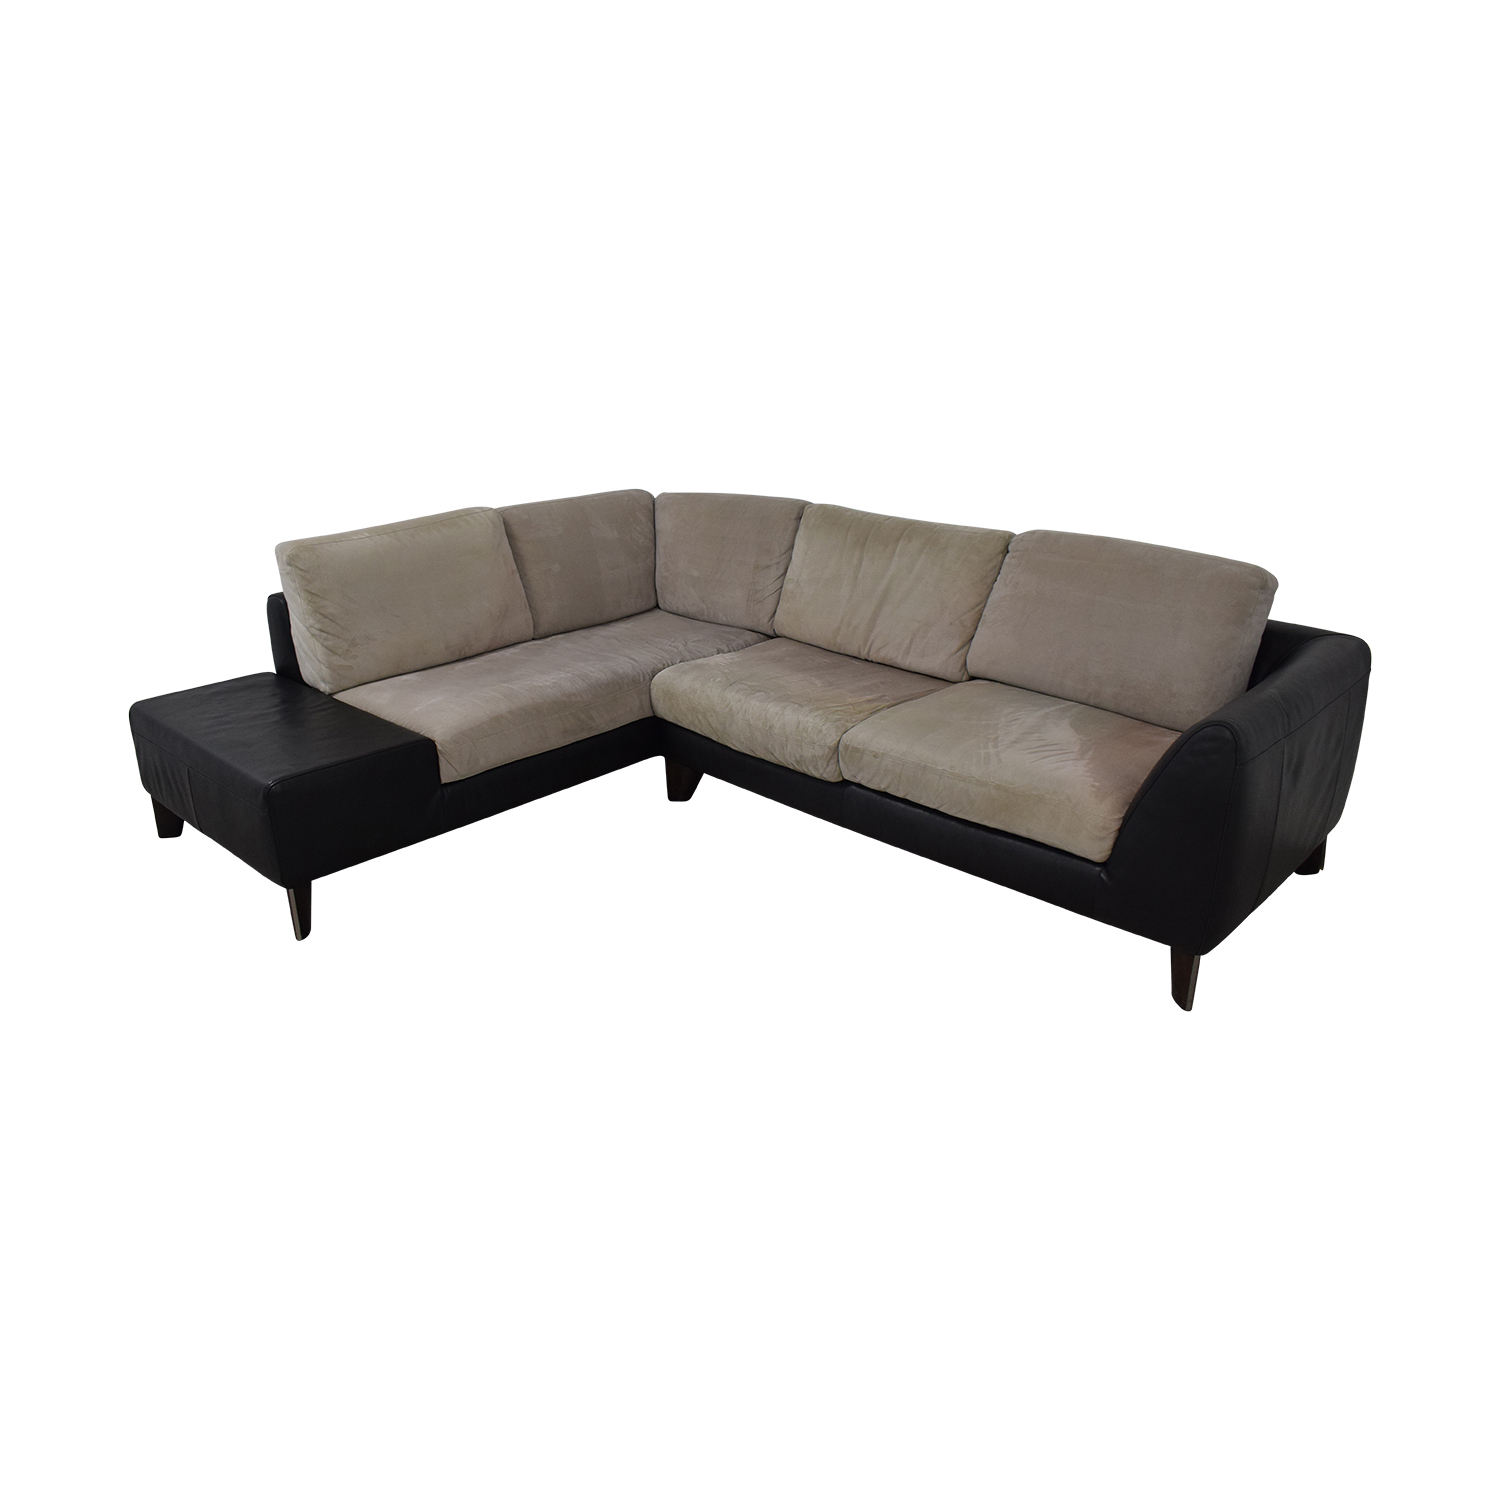 Used Sofas Online: Italsofa Two-Piece Sectional Sofa / Sofas